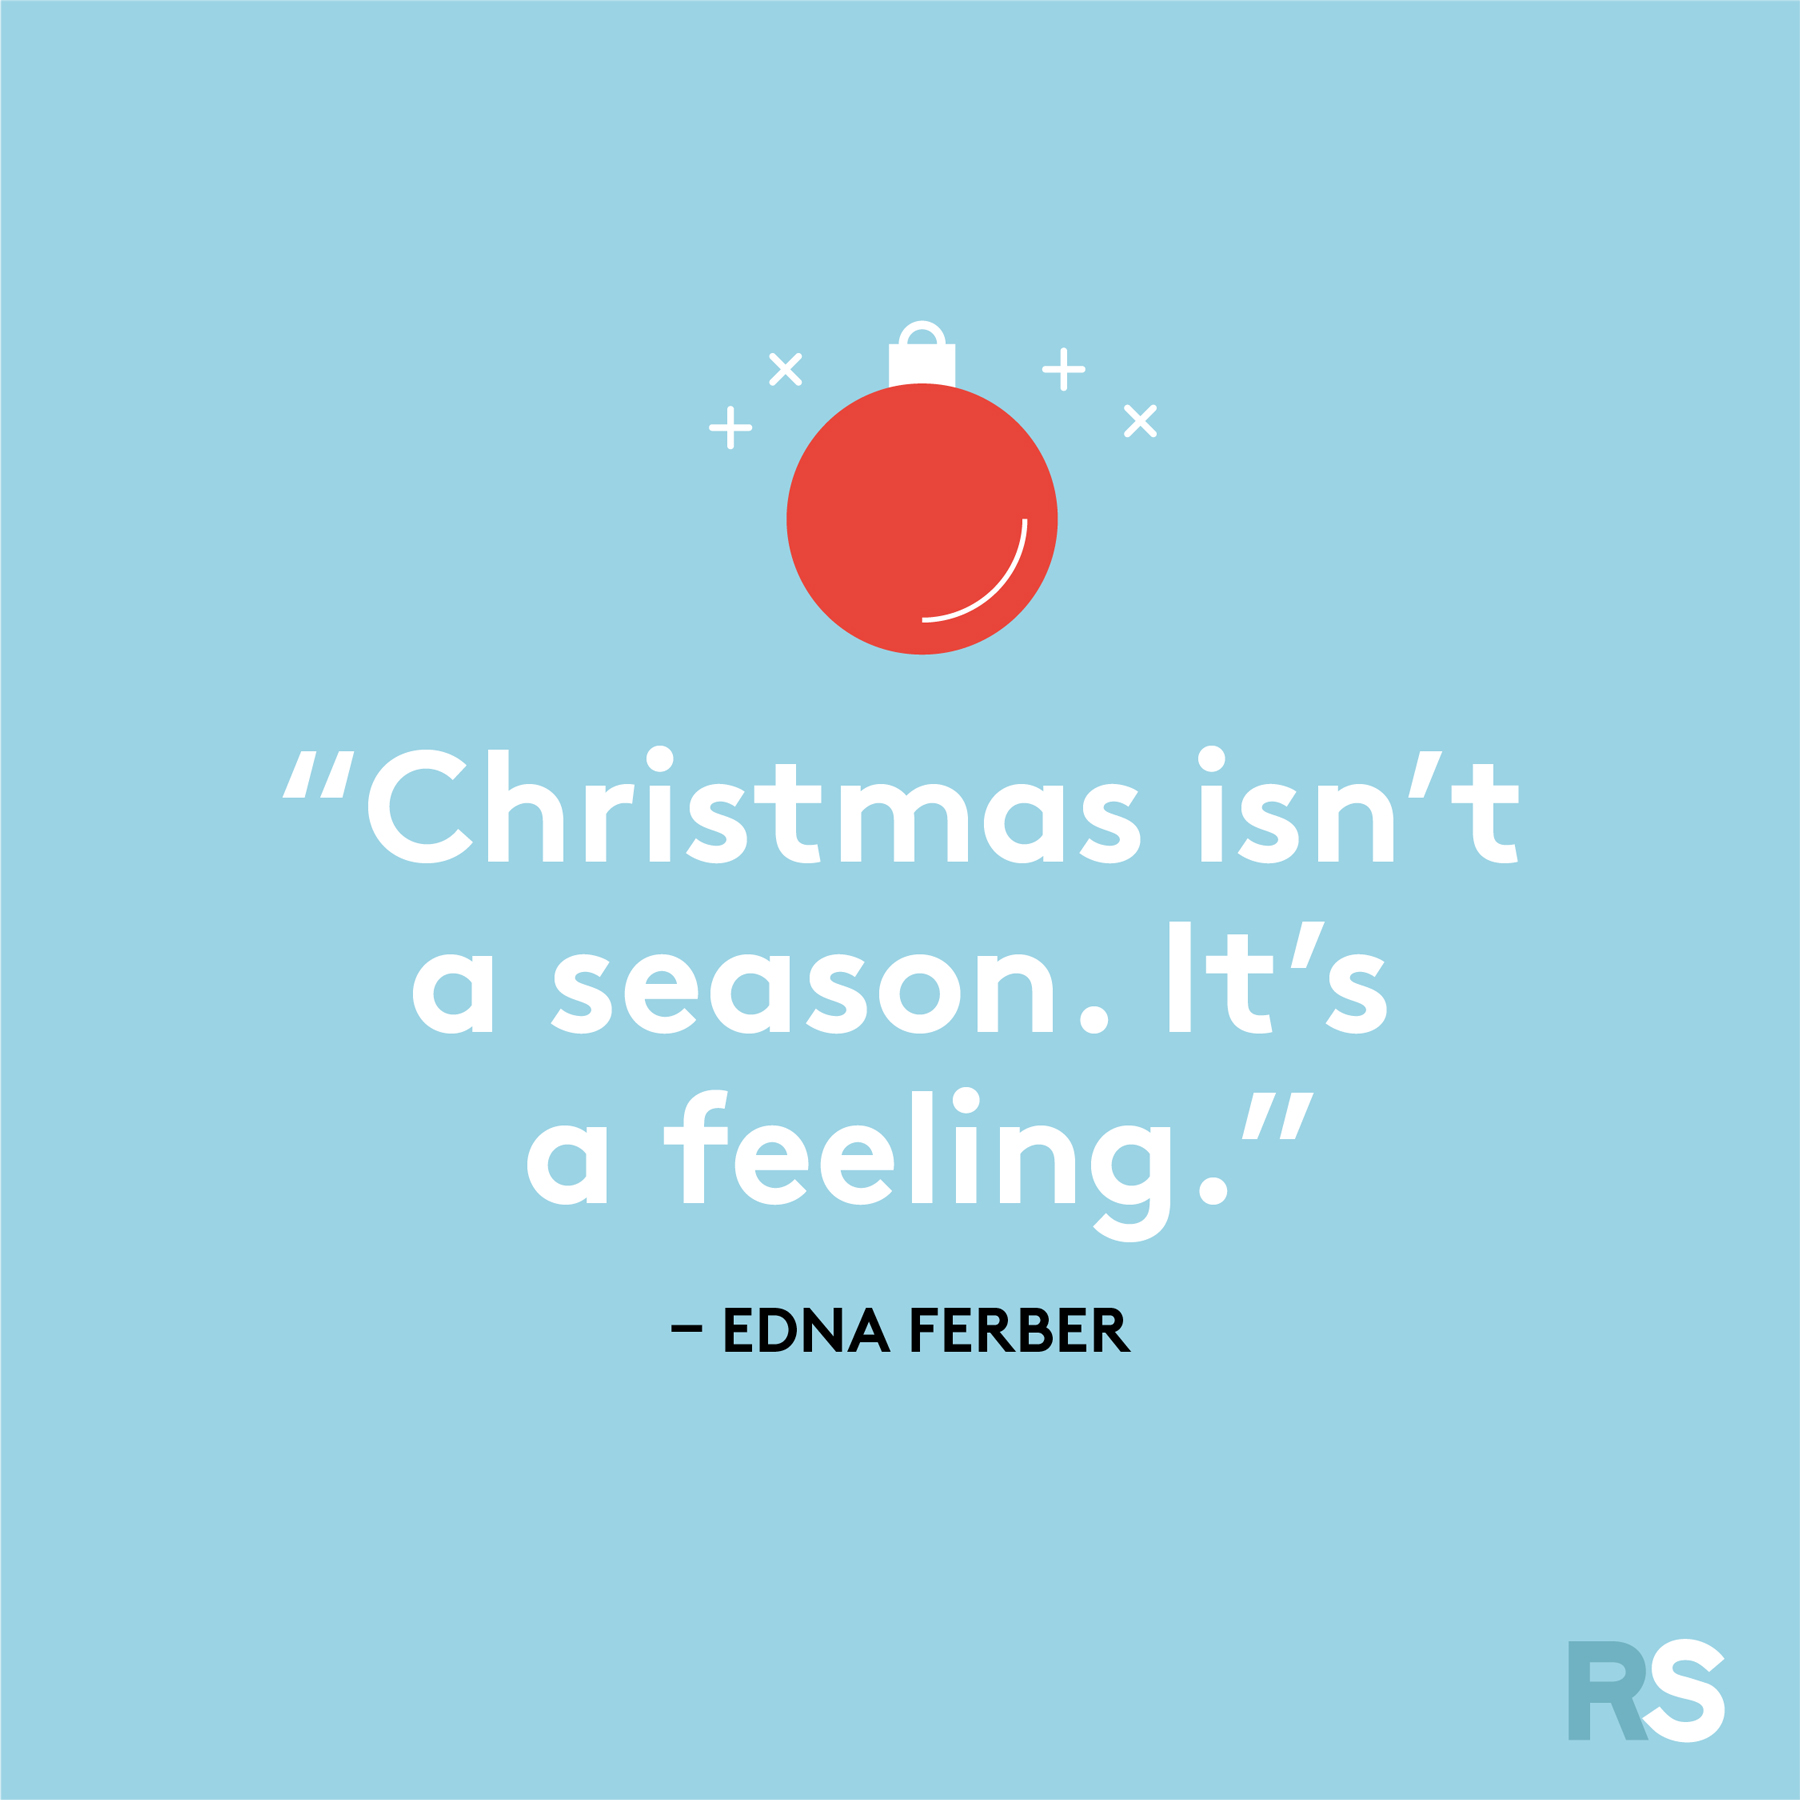 Best Christmas quotes - Edna Ferber